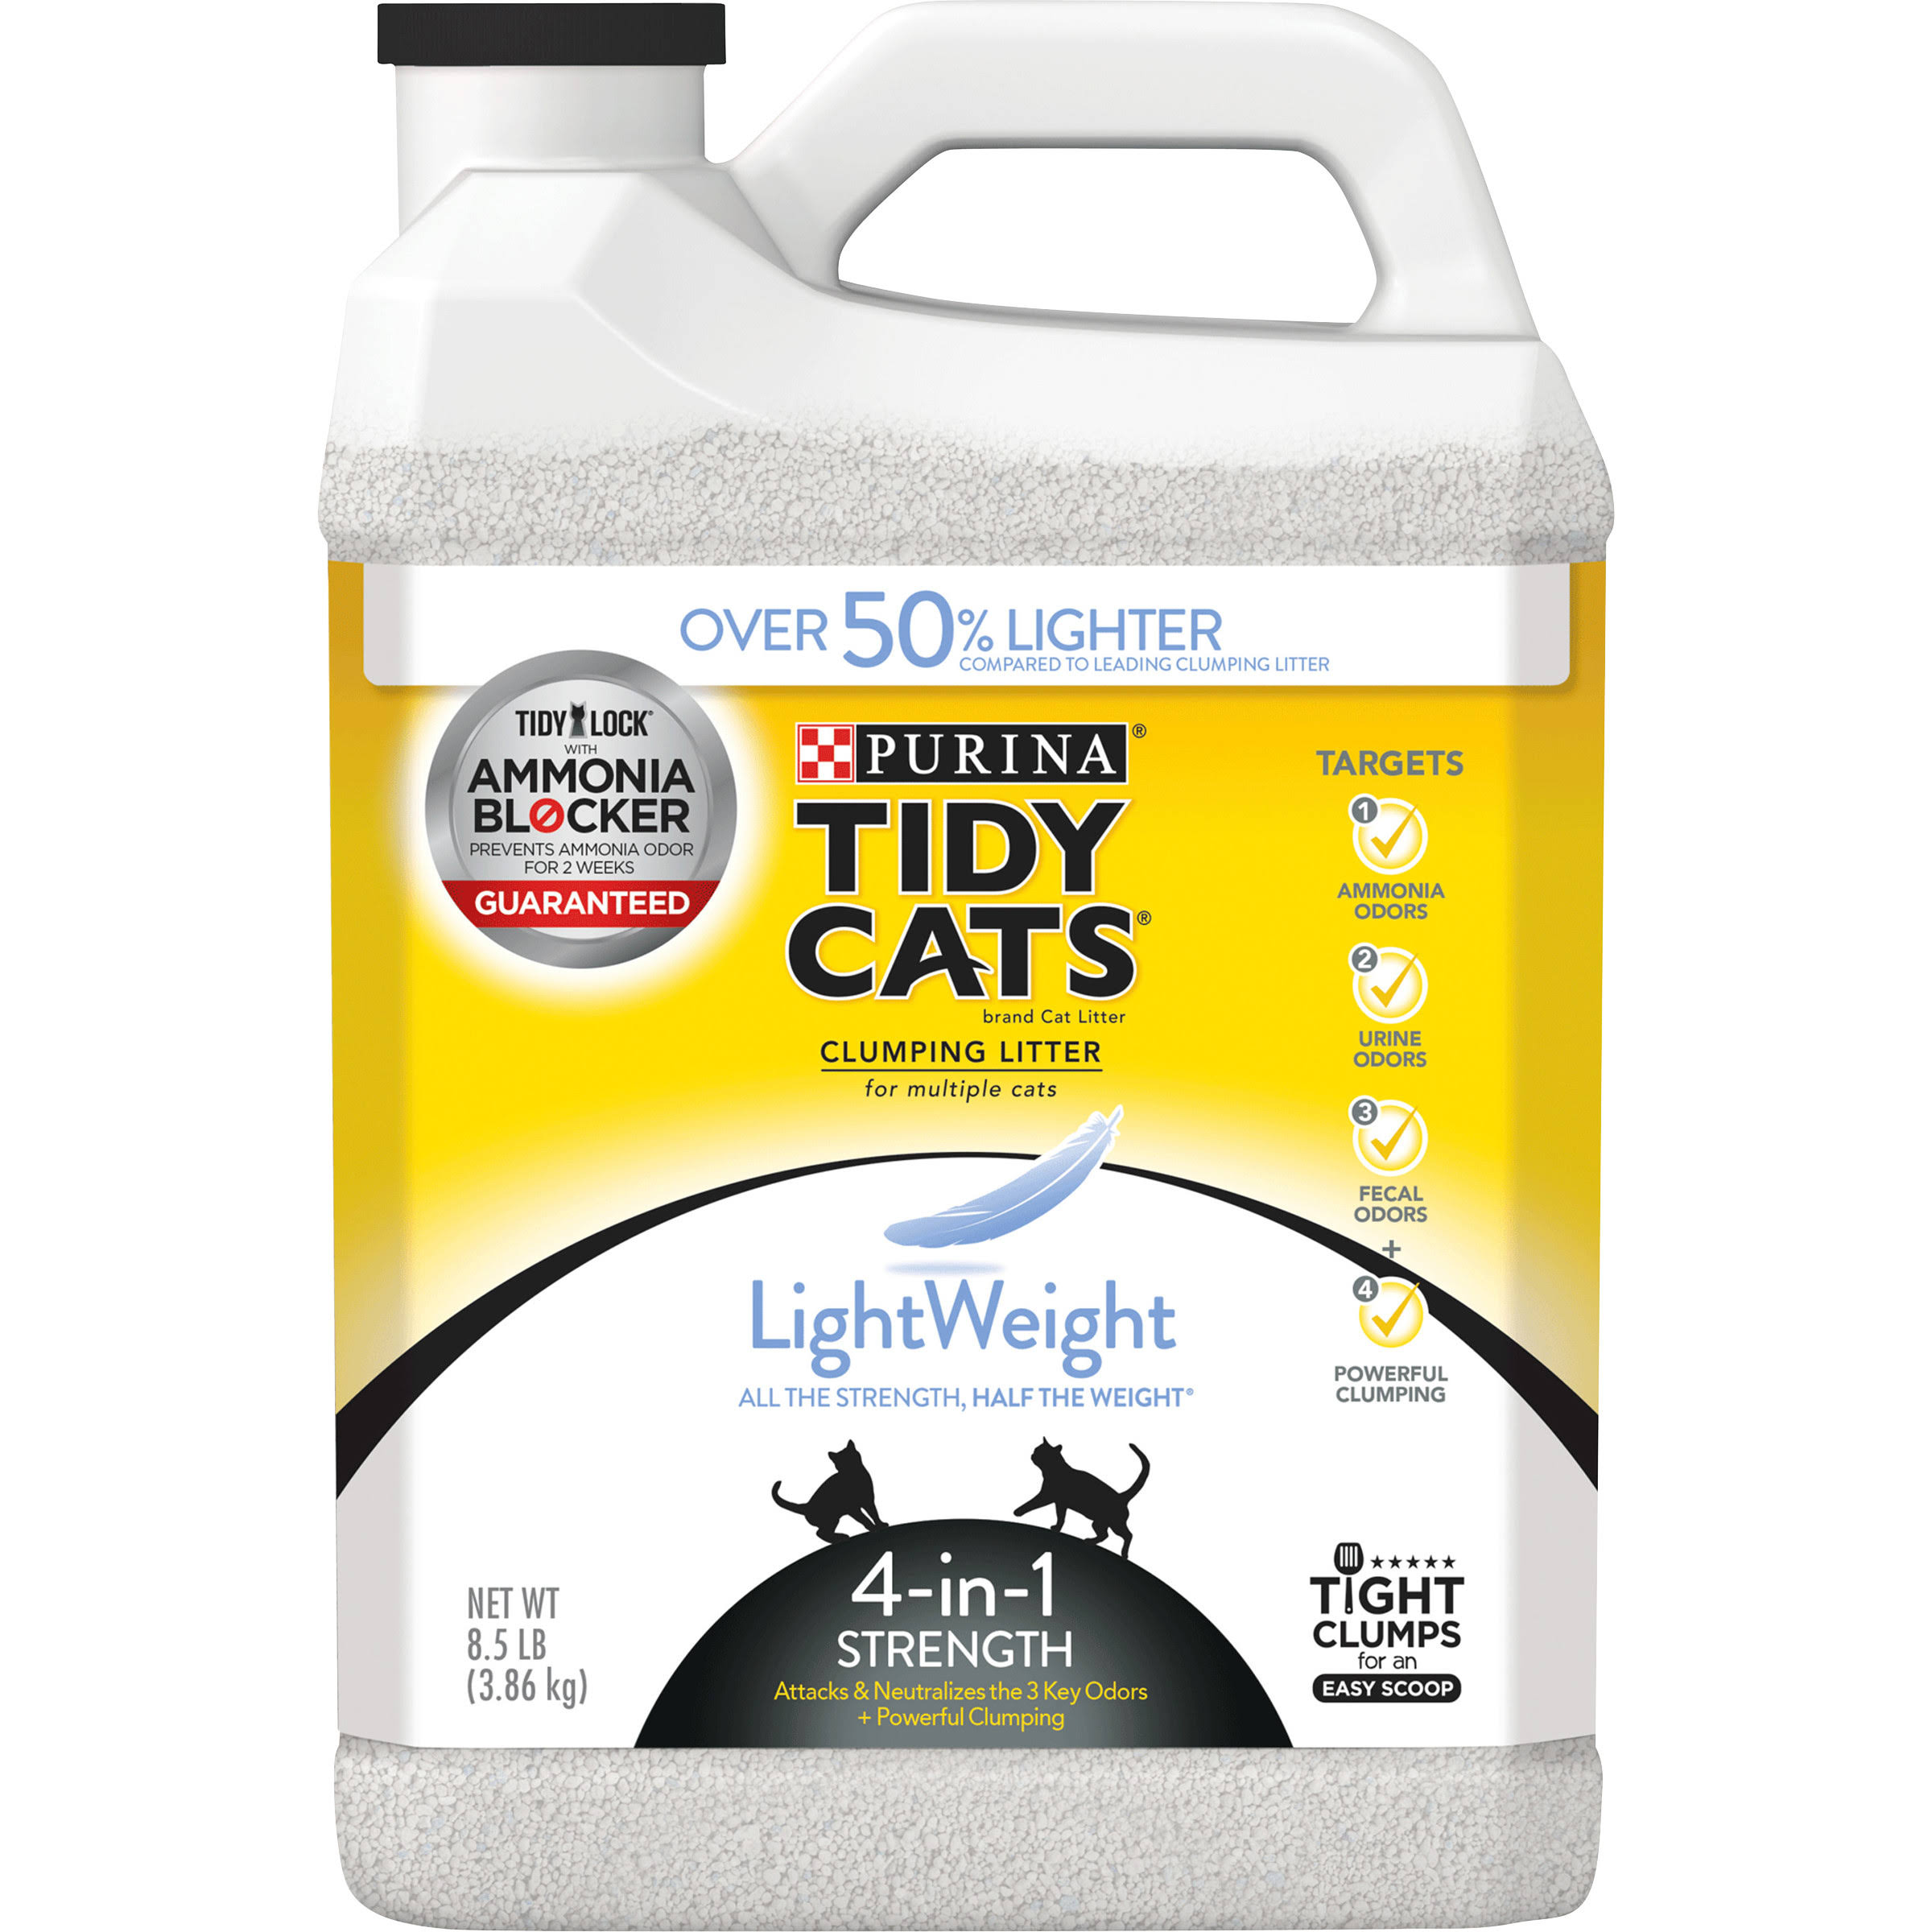 Purina Tidy Cats Light Weight 4-in-1 Strength Clumping Cat Litter - 8.5lb